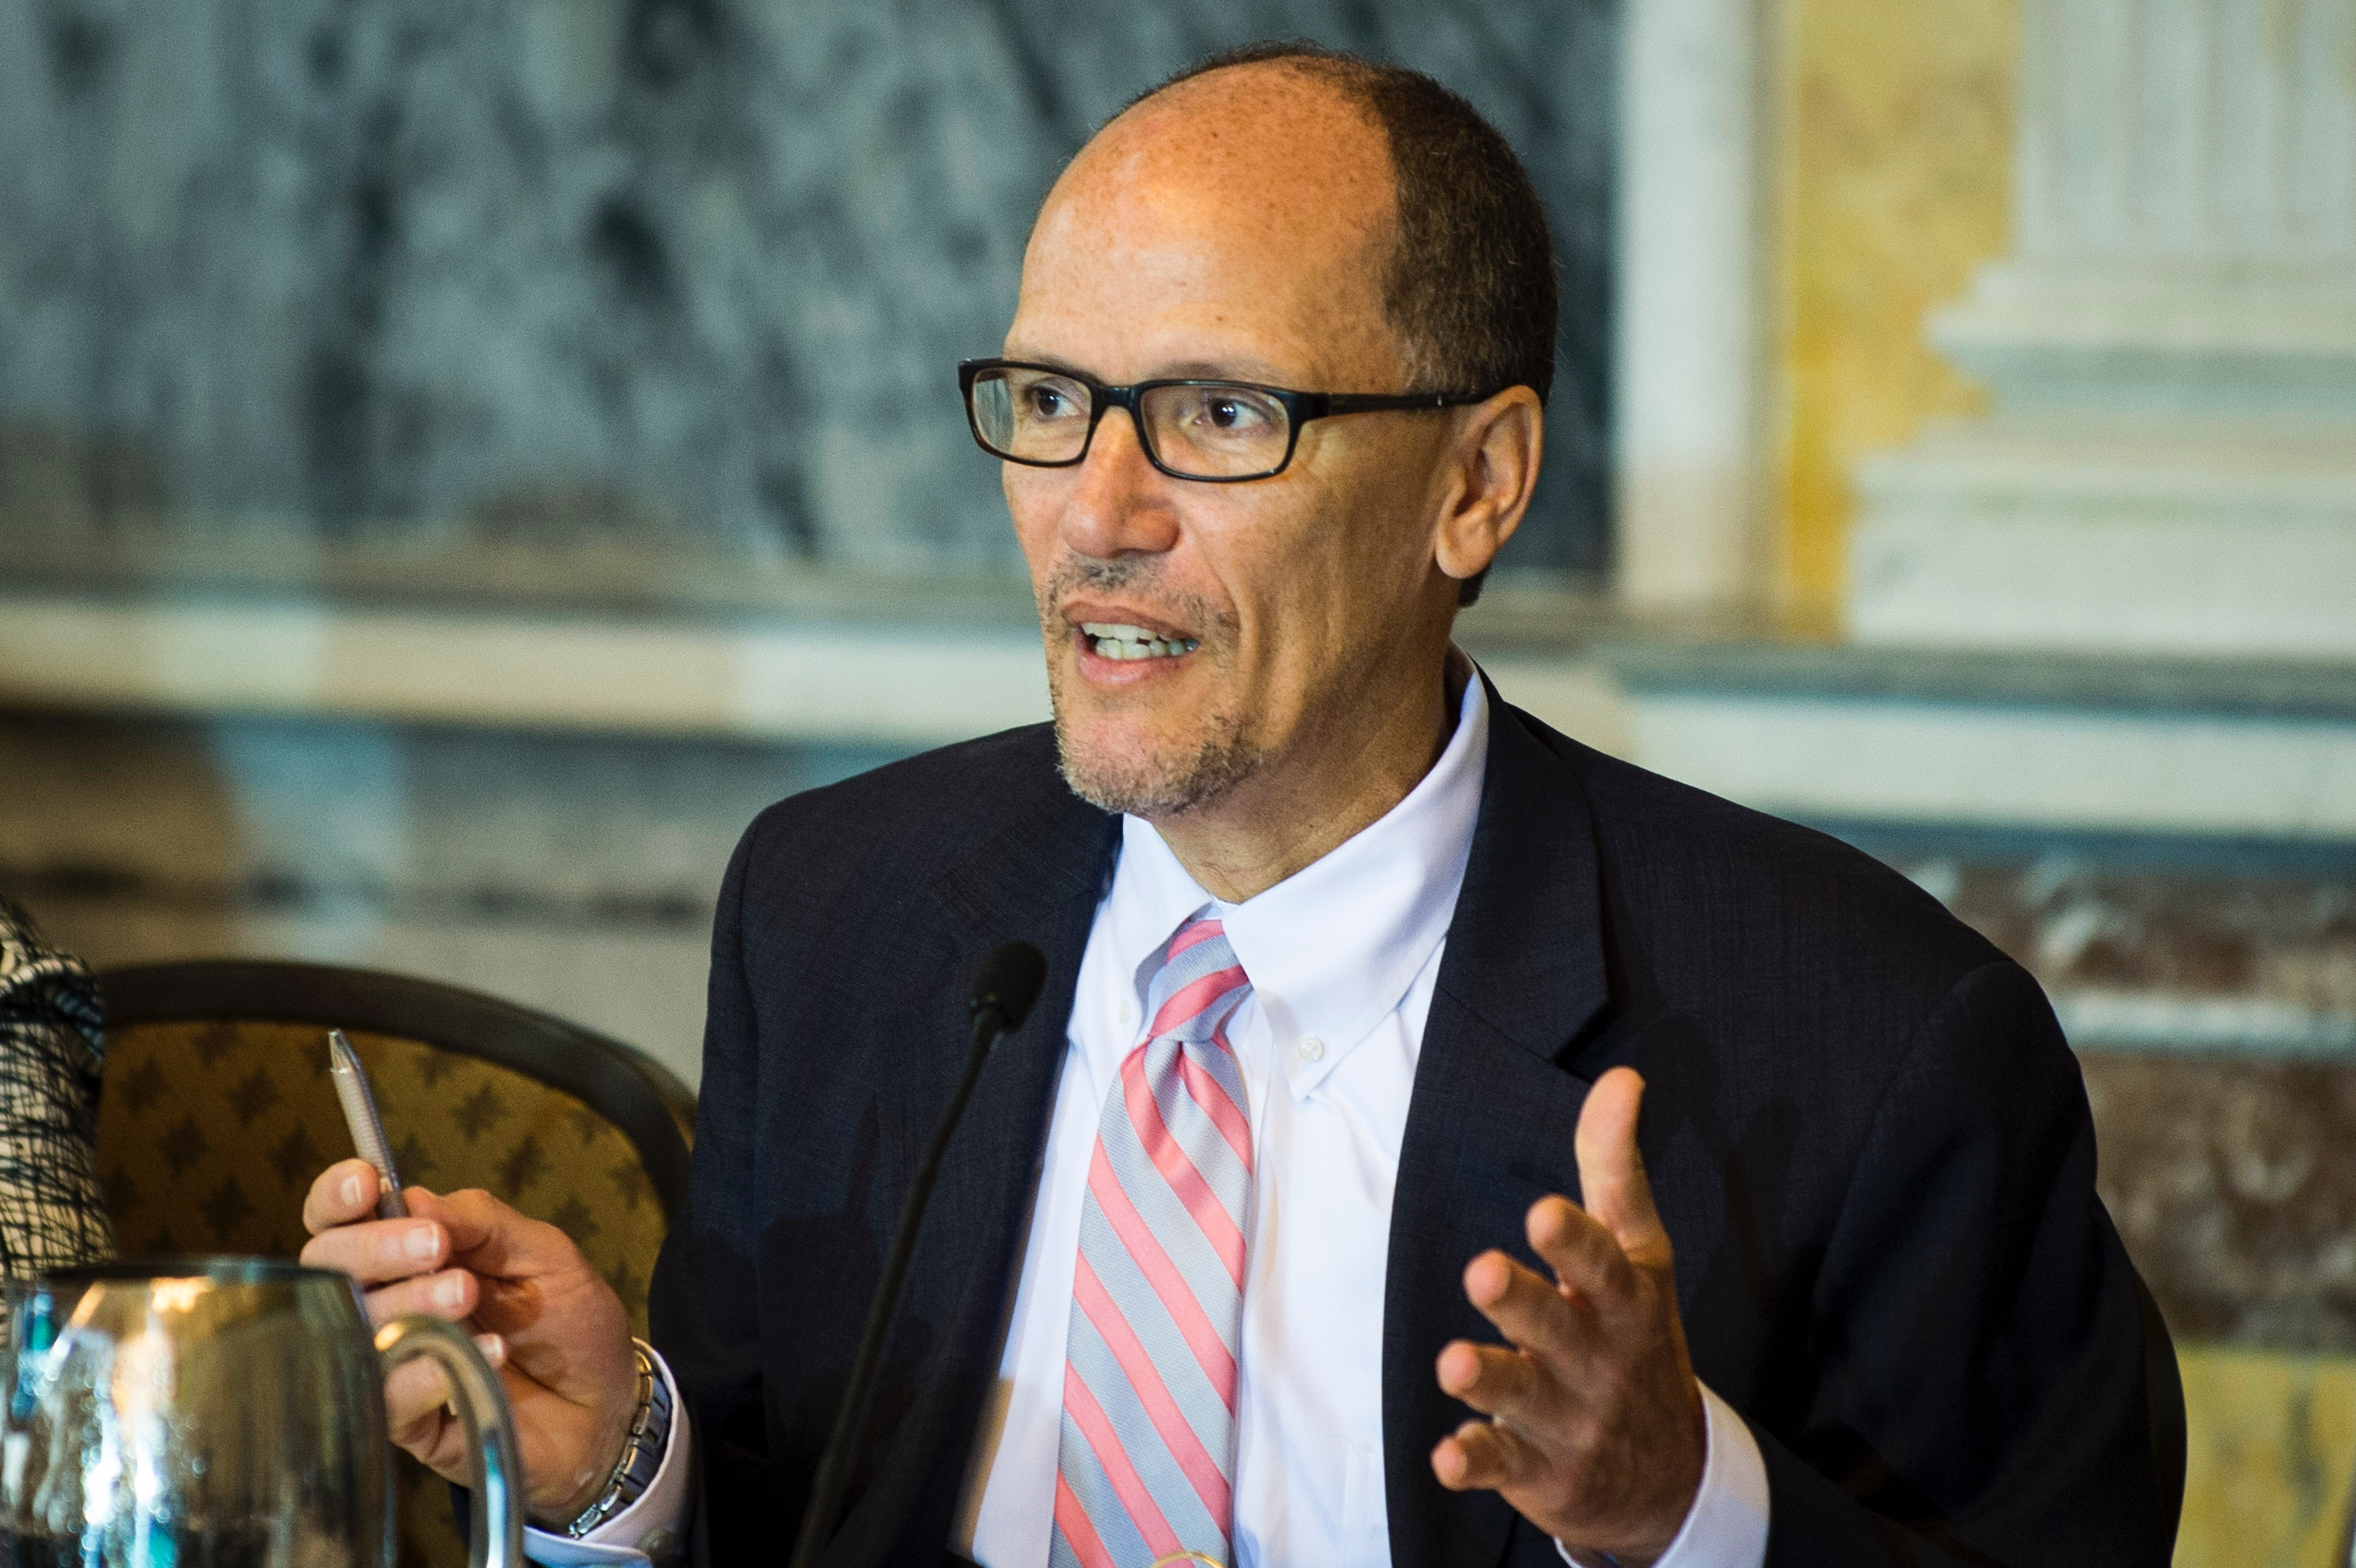 DNC Resignations Requested as Tom Perez Seeks Party Overhaul